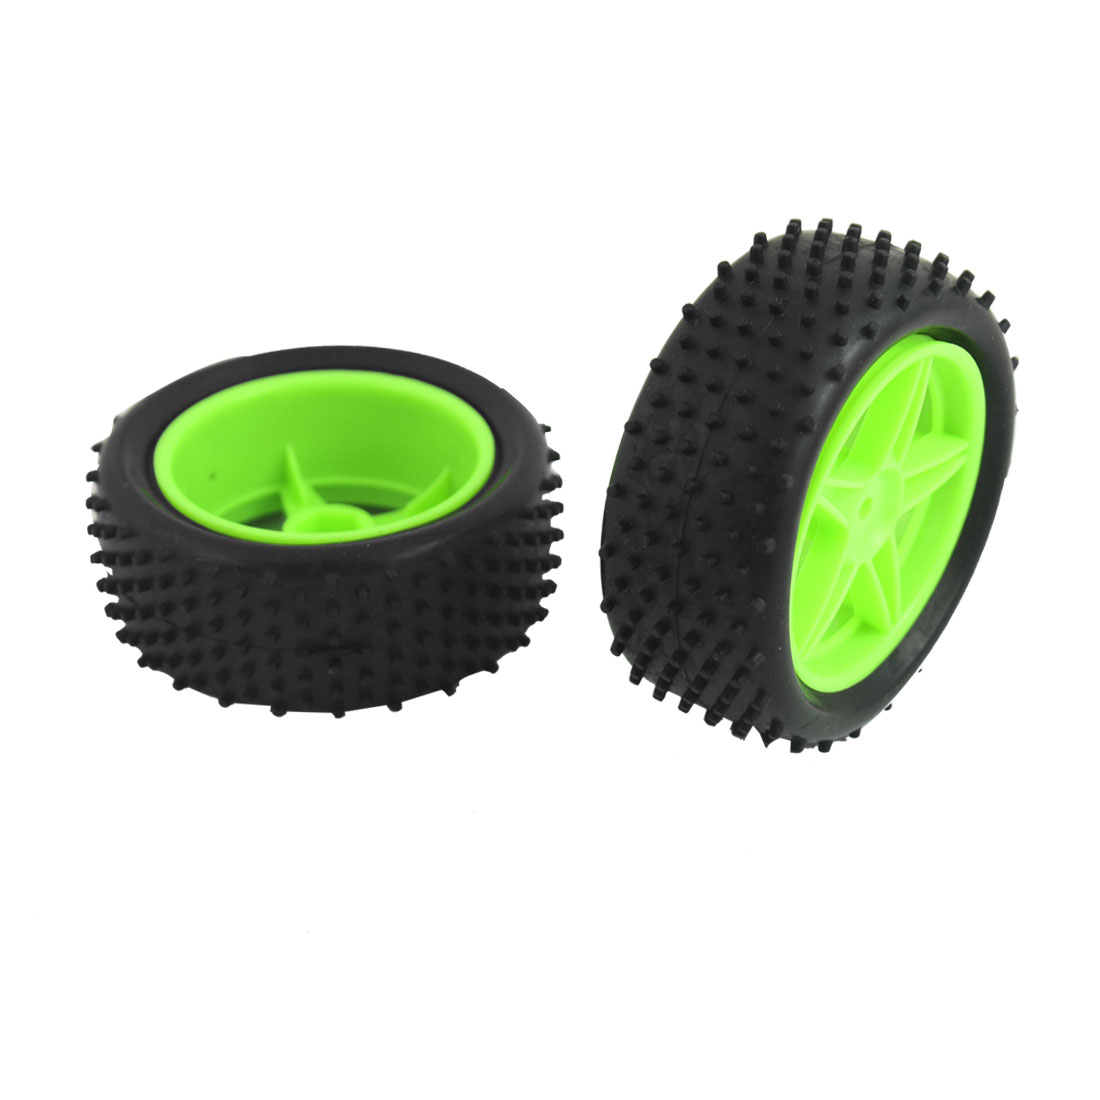 Pair 06010 06026 Front Rear Wheel Rim Tyre Set for 1/10 Scale RC Buggy Car